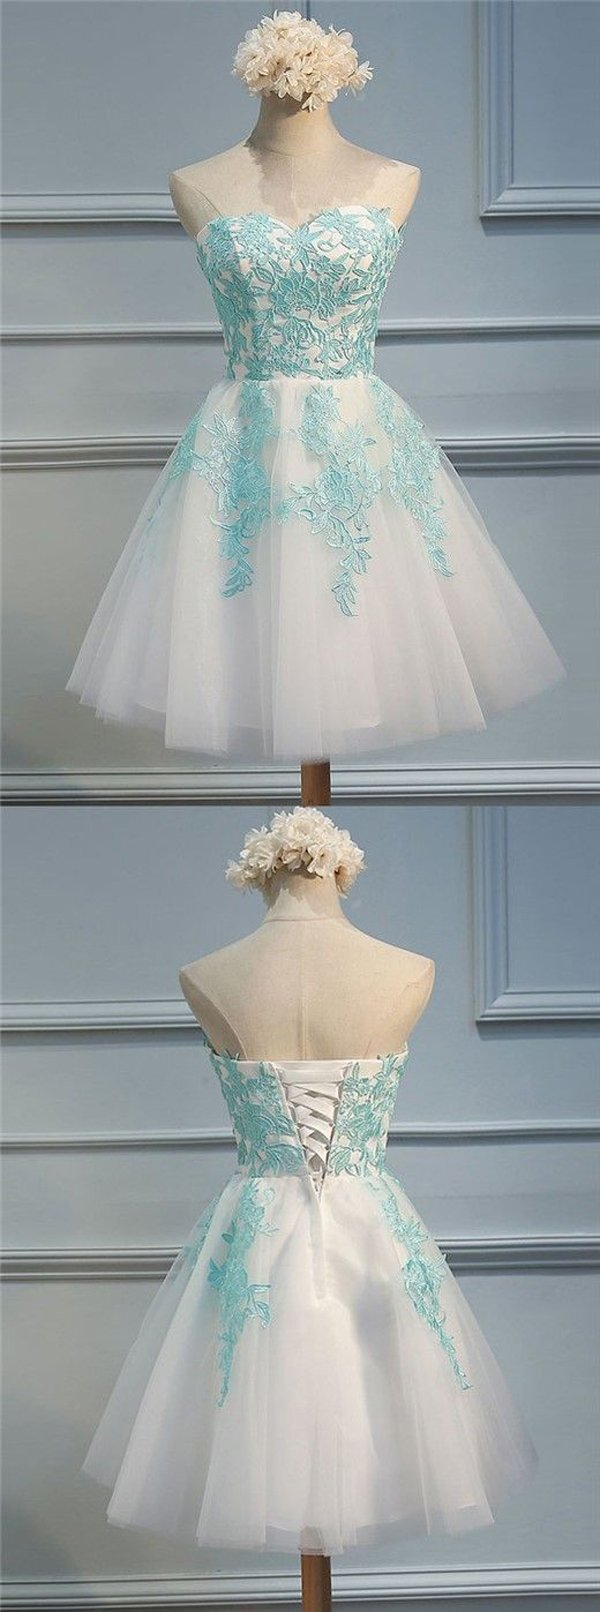 Tulle A-line Sweetheart Appliques Open Back Homecoming Dresses, MH358 - onlybridals